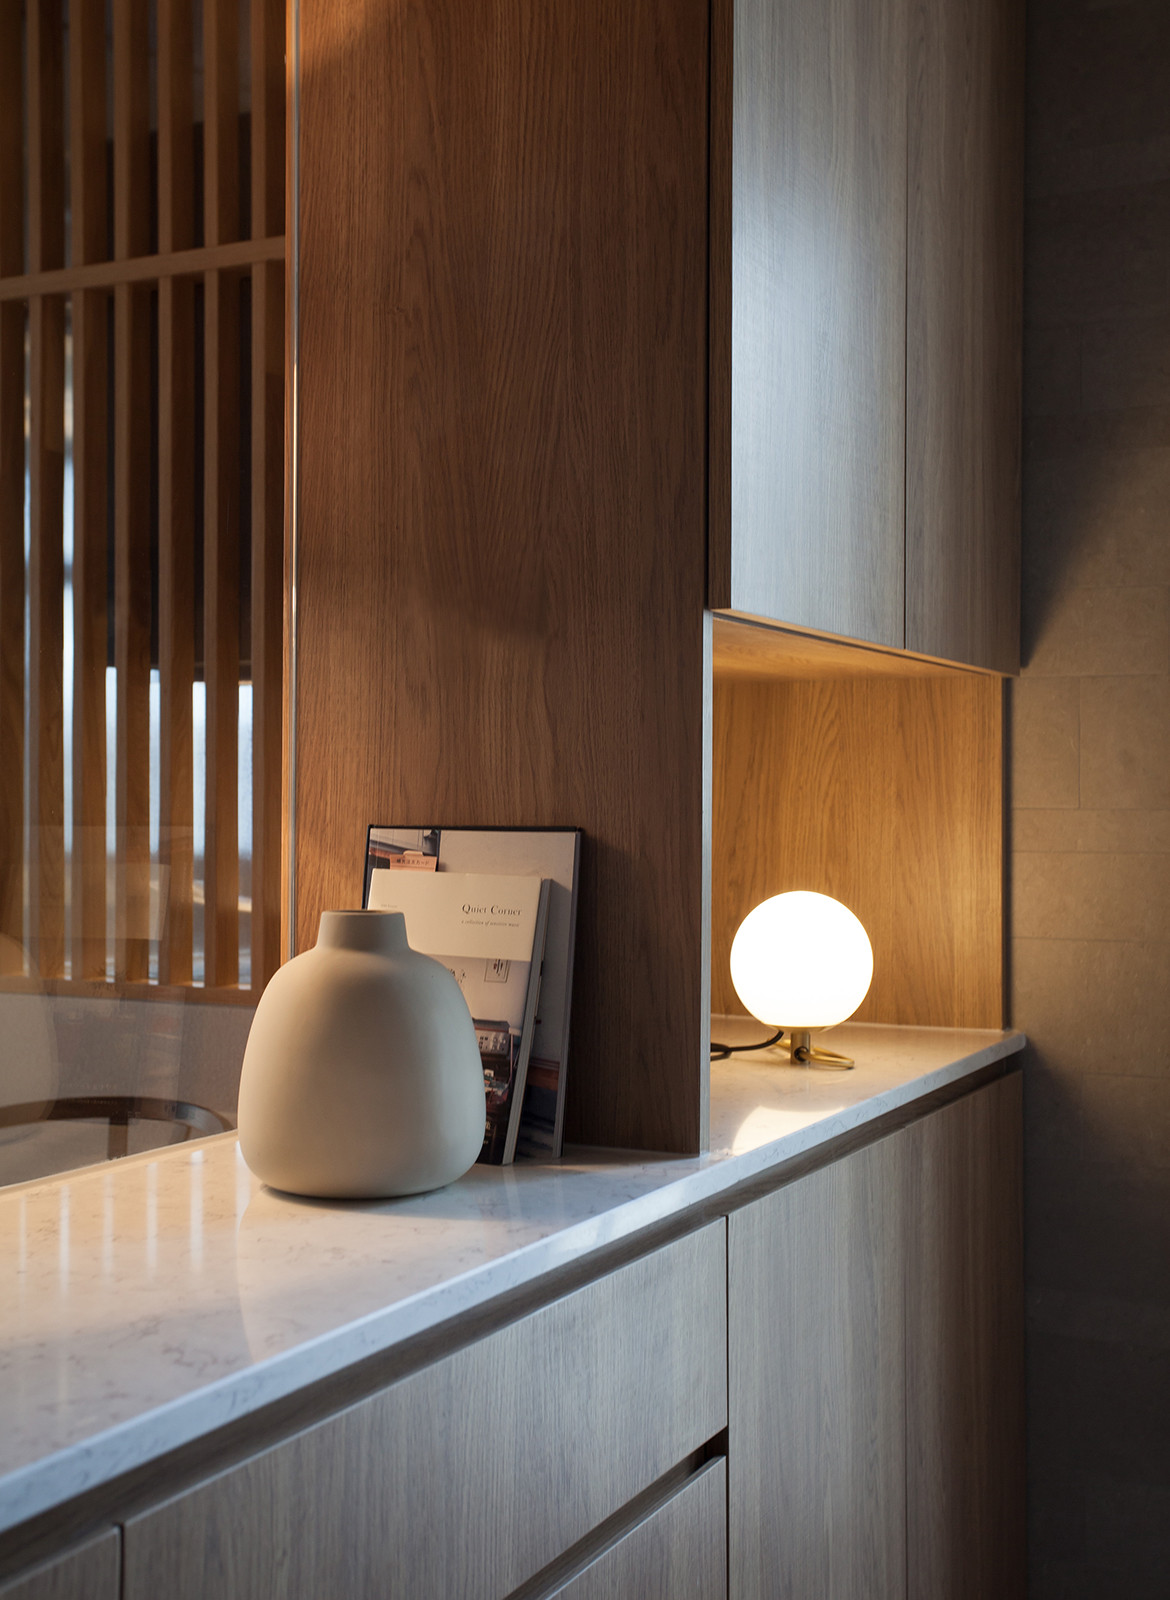 Taikoo Shing Apartment Studio Adjective lighting on kitchen bench